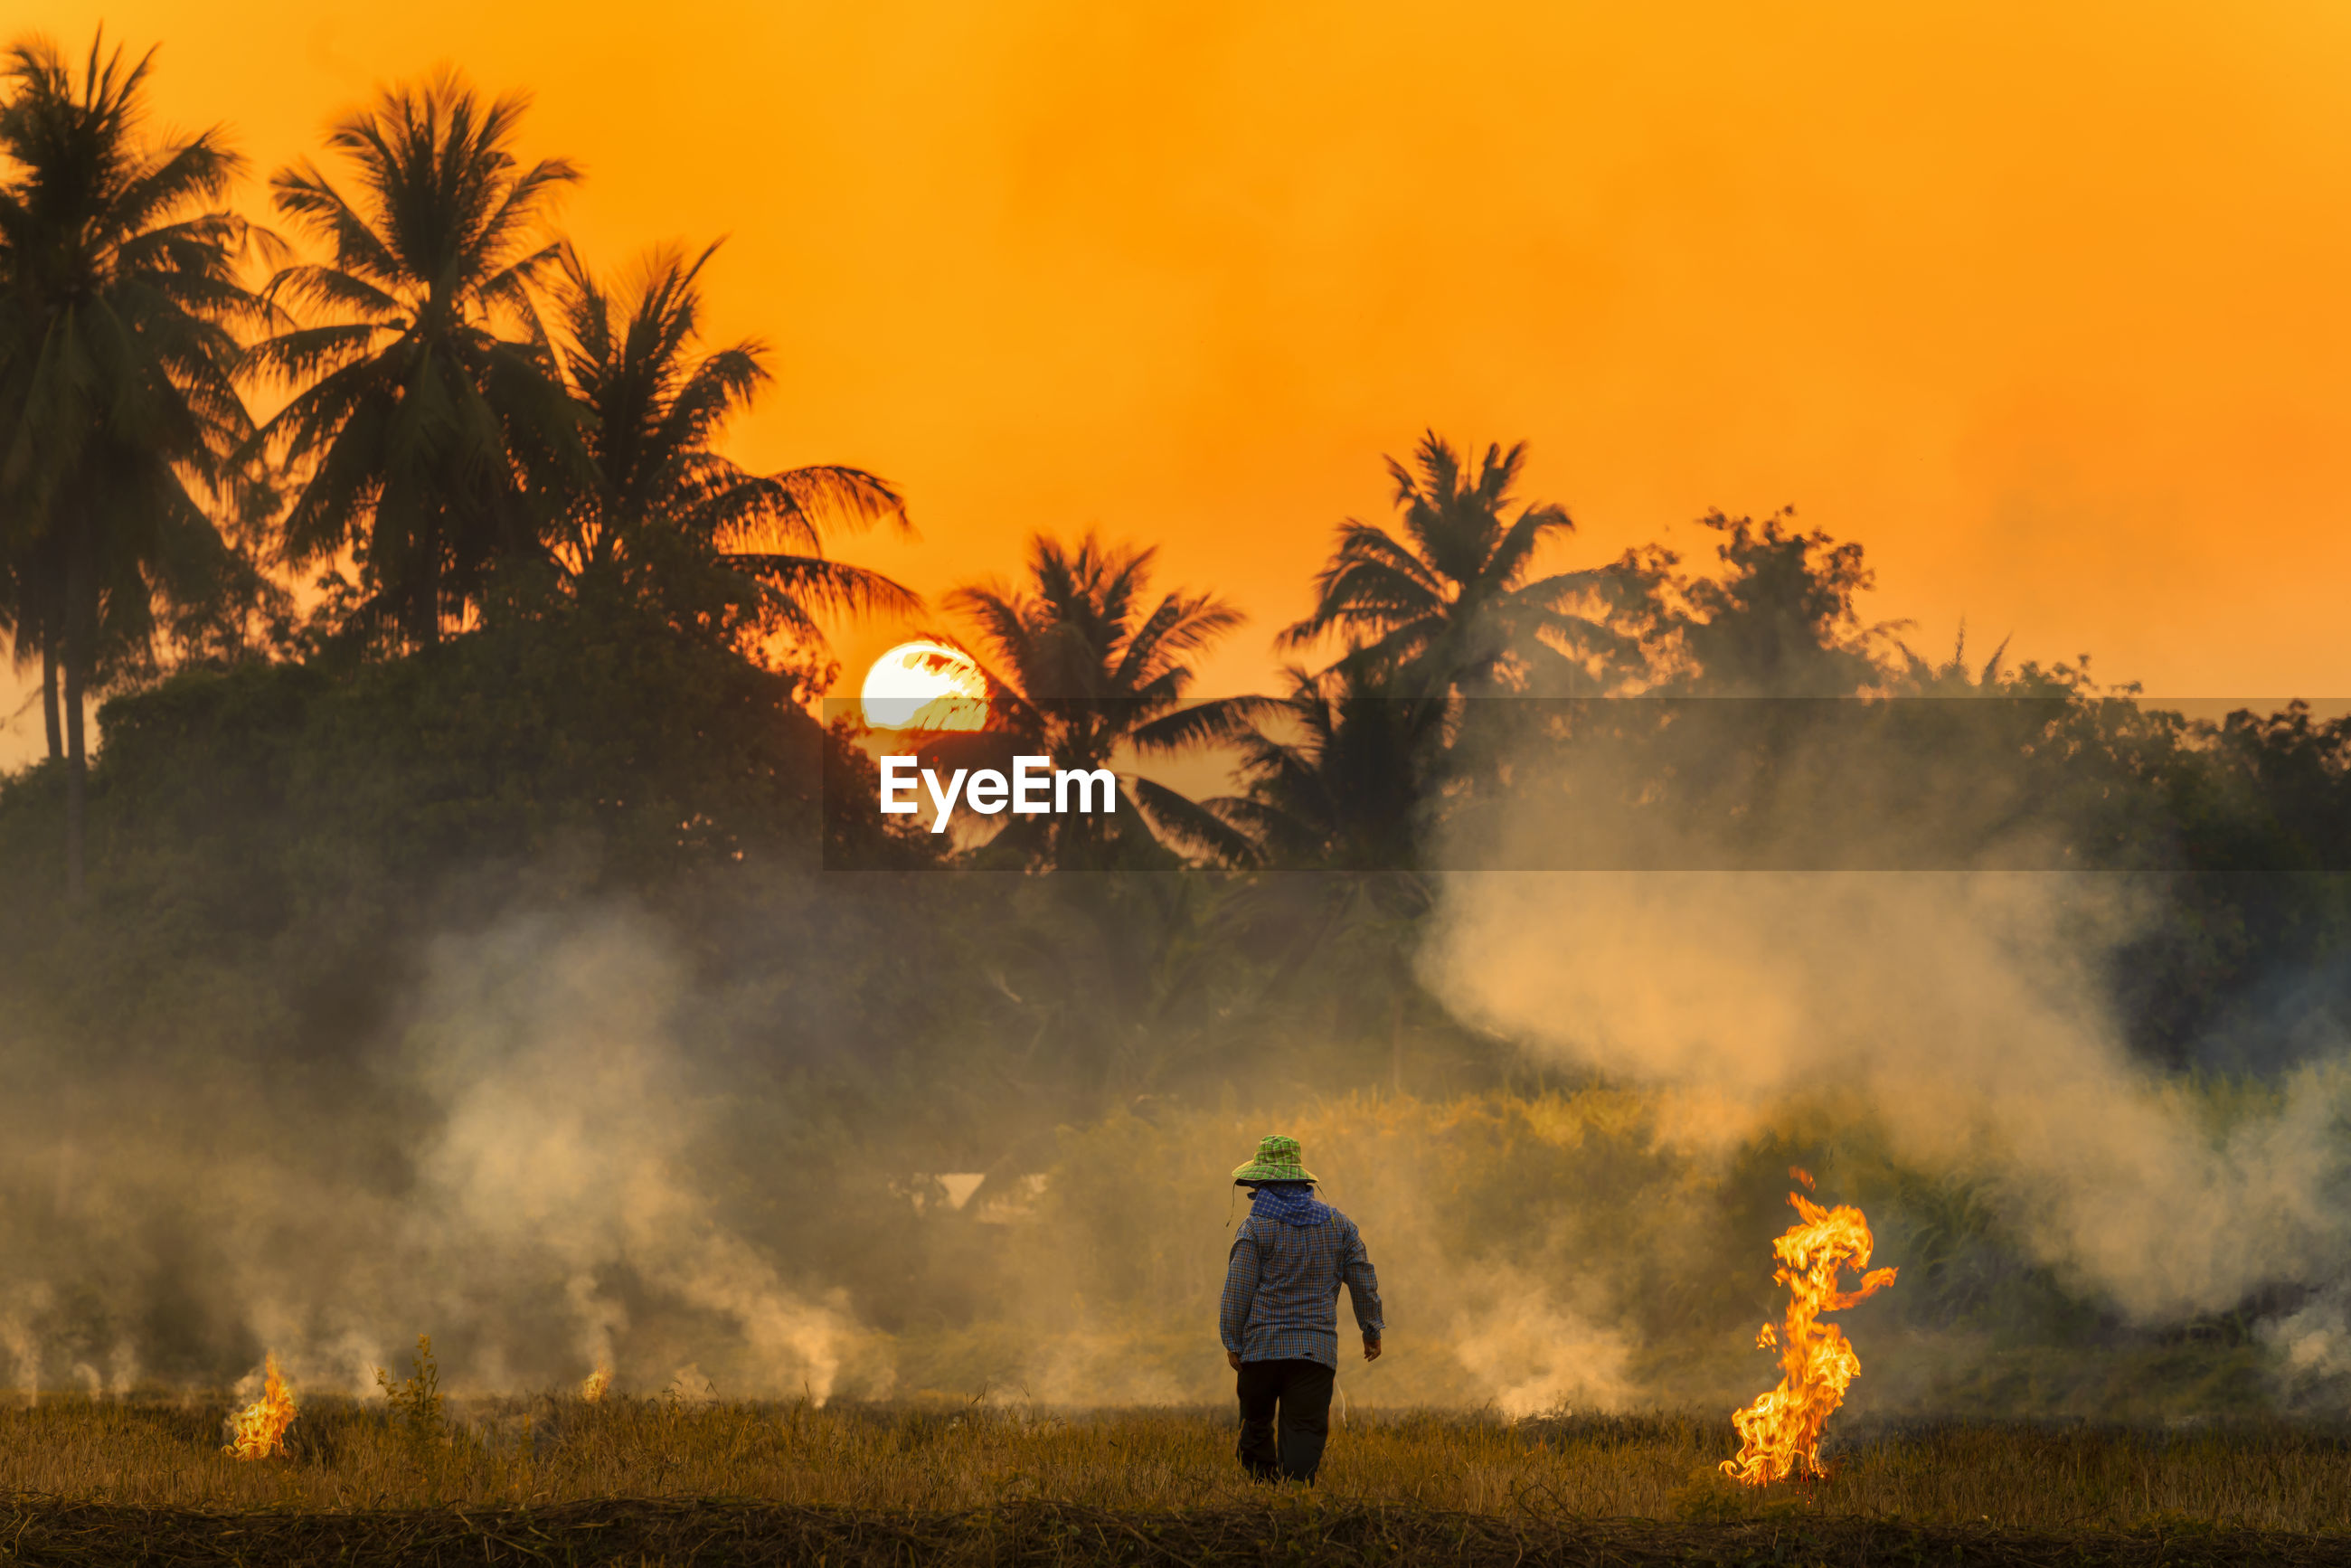 Rear view of man standing amidst smoky field against orange sky